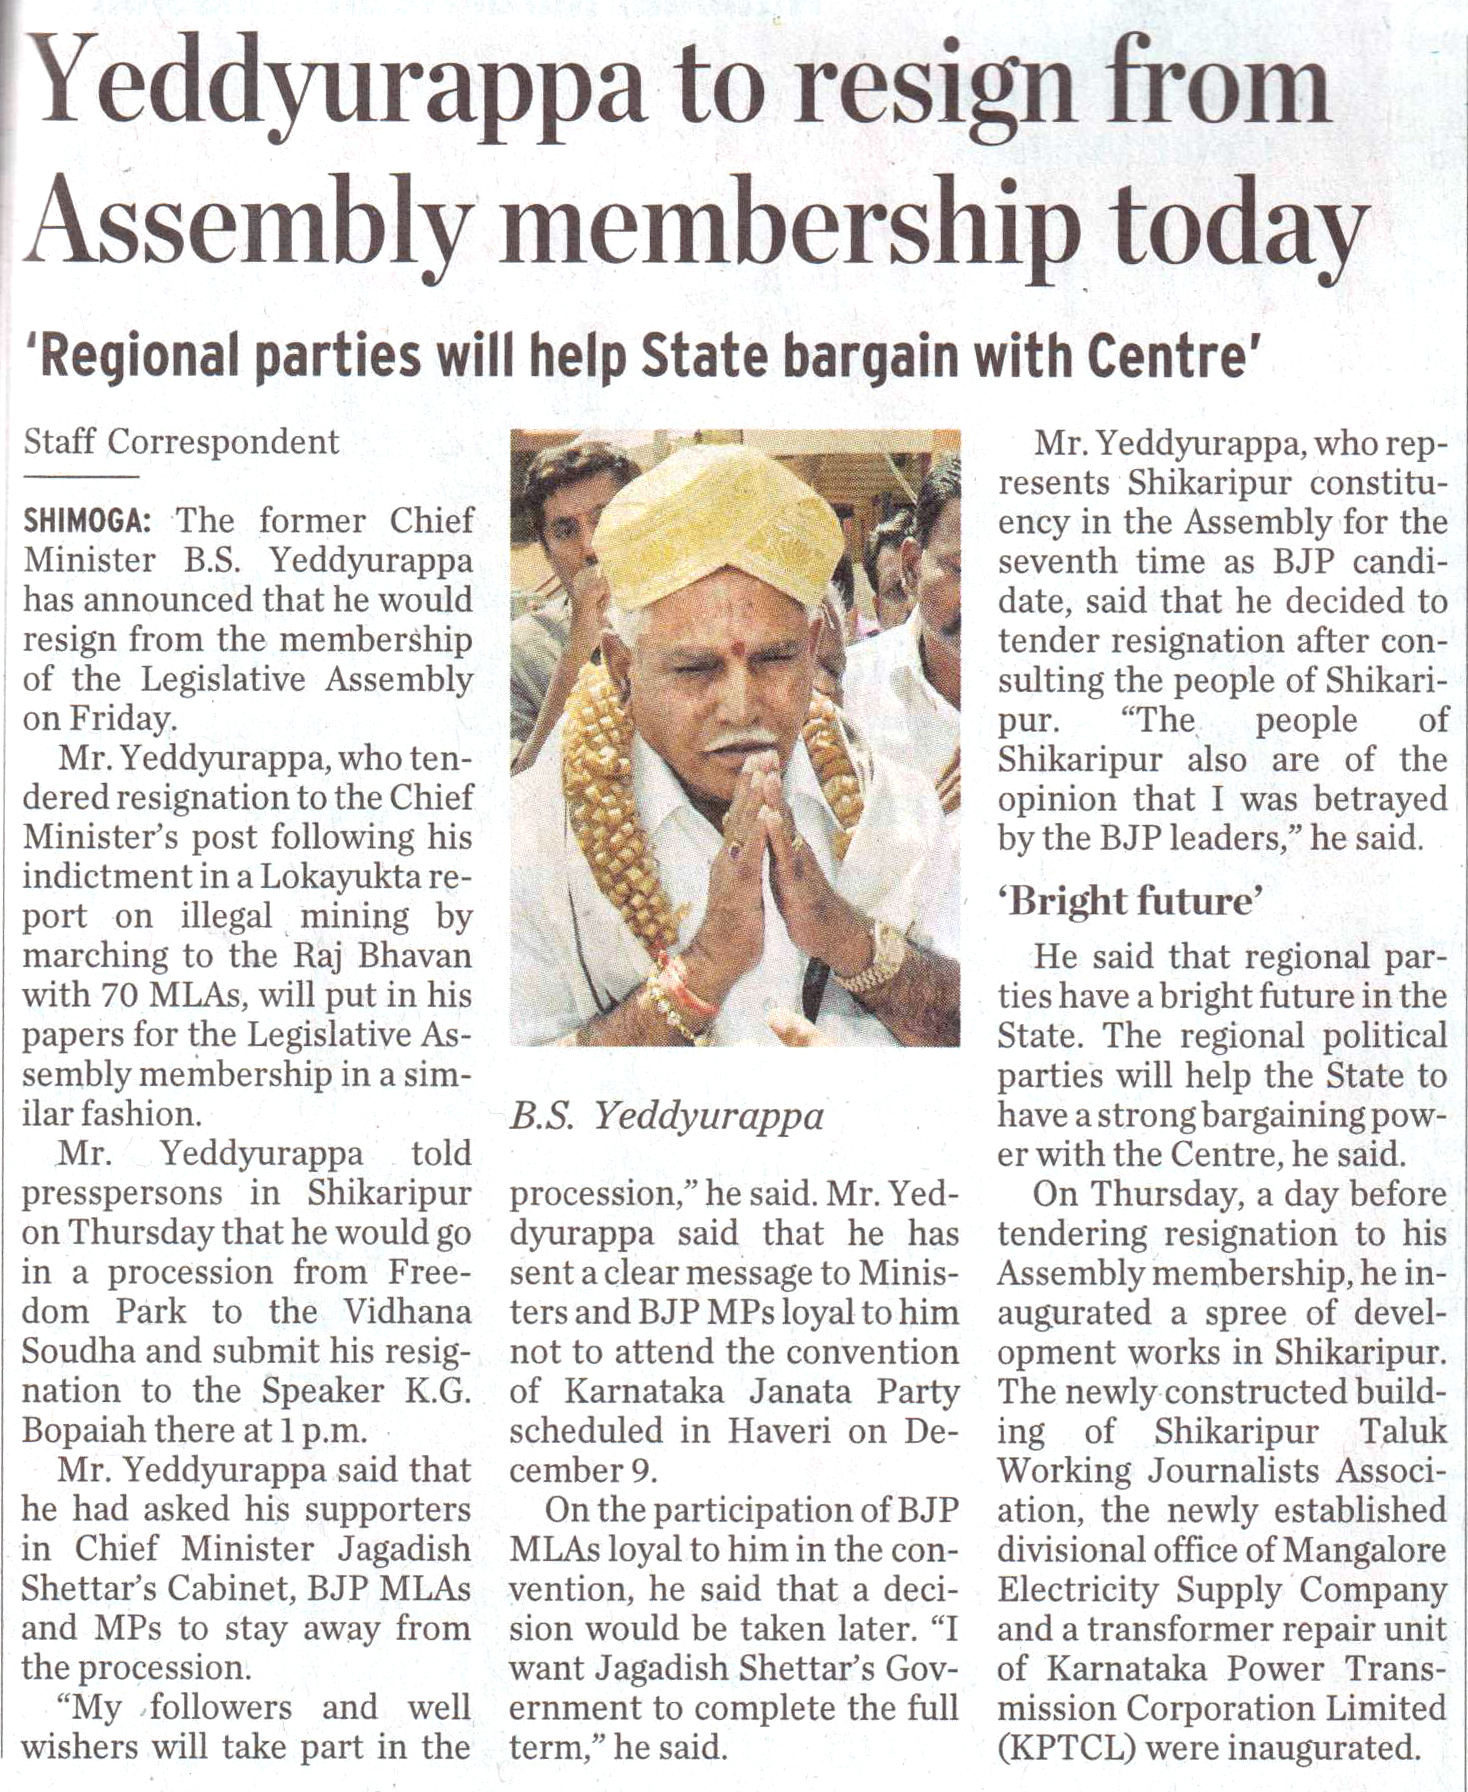 Yeddyurappa to resign from Assembly membership today